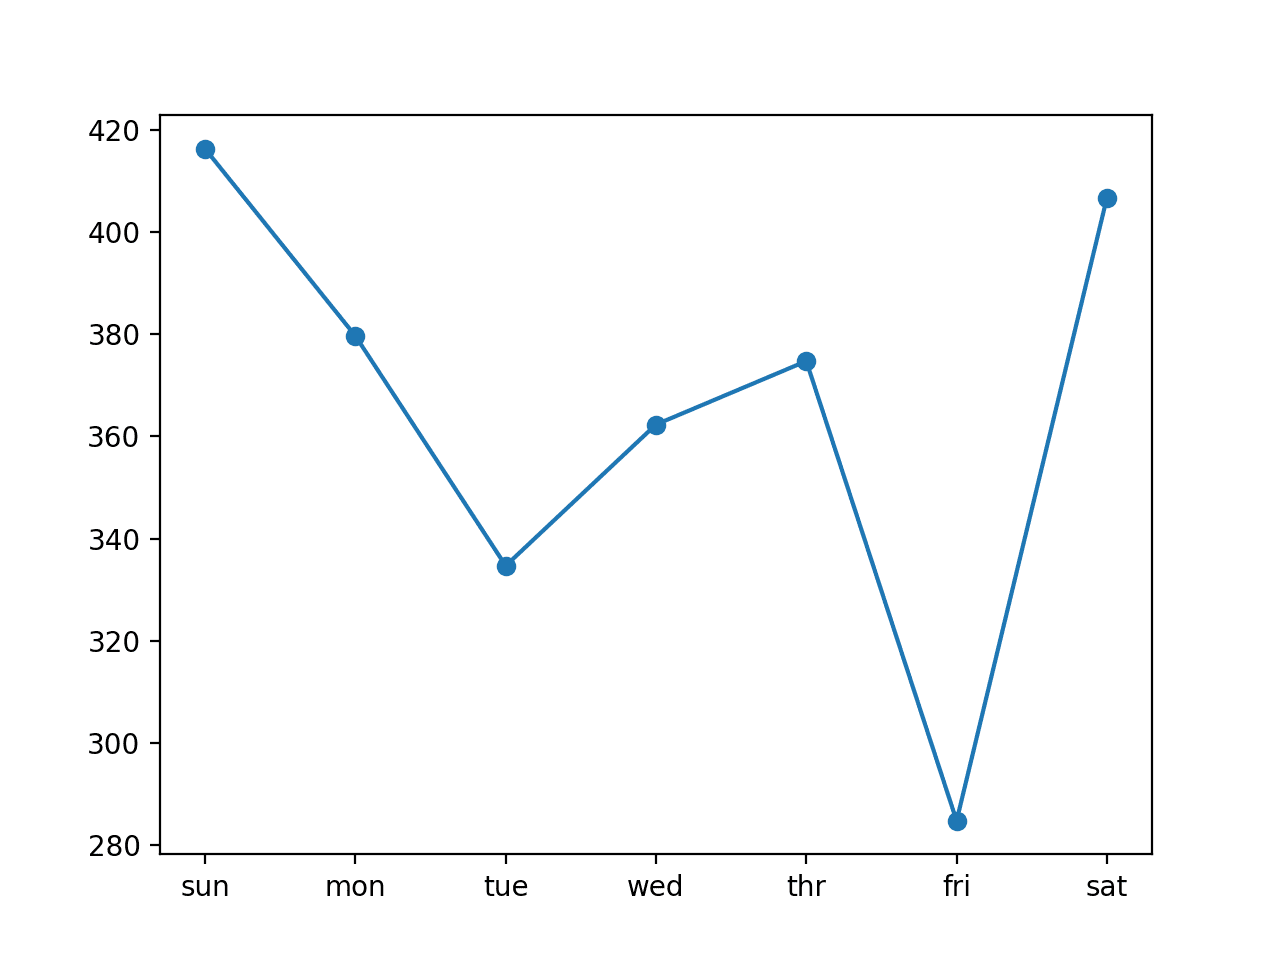 Line Plot of RMSE per Day for Univariate Encoder-Decoder ConvLSTM with 14-day Inputs